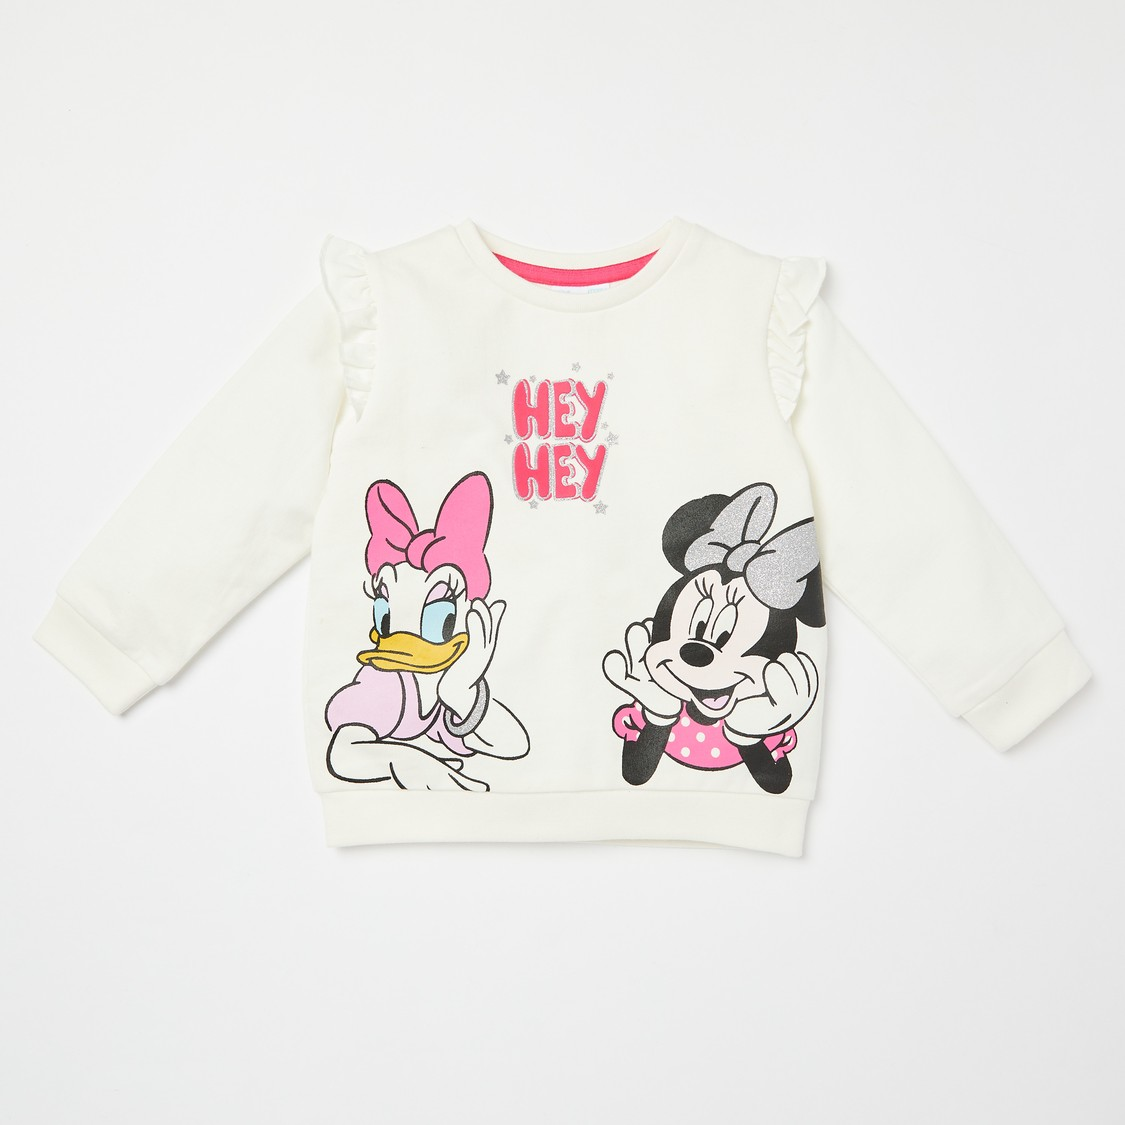 Daisy Duck & Minnie Mouse Print T-shirt and Full Length Jog Pants Set